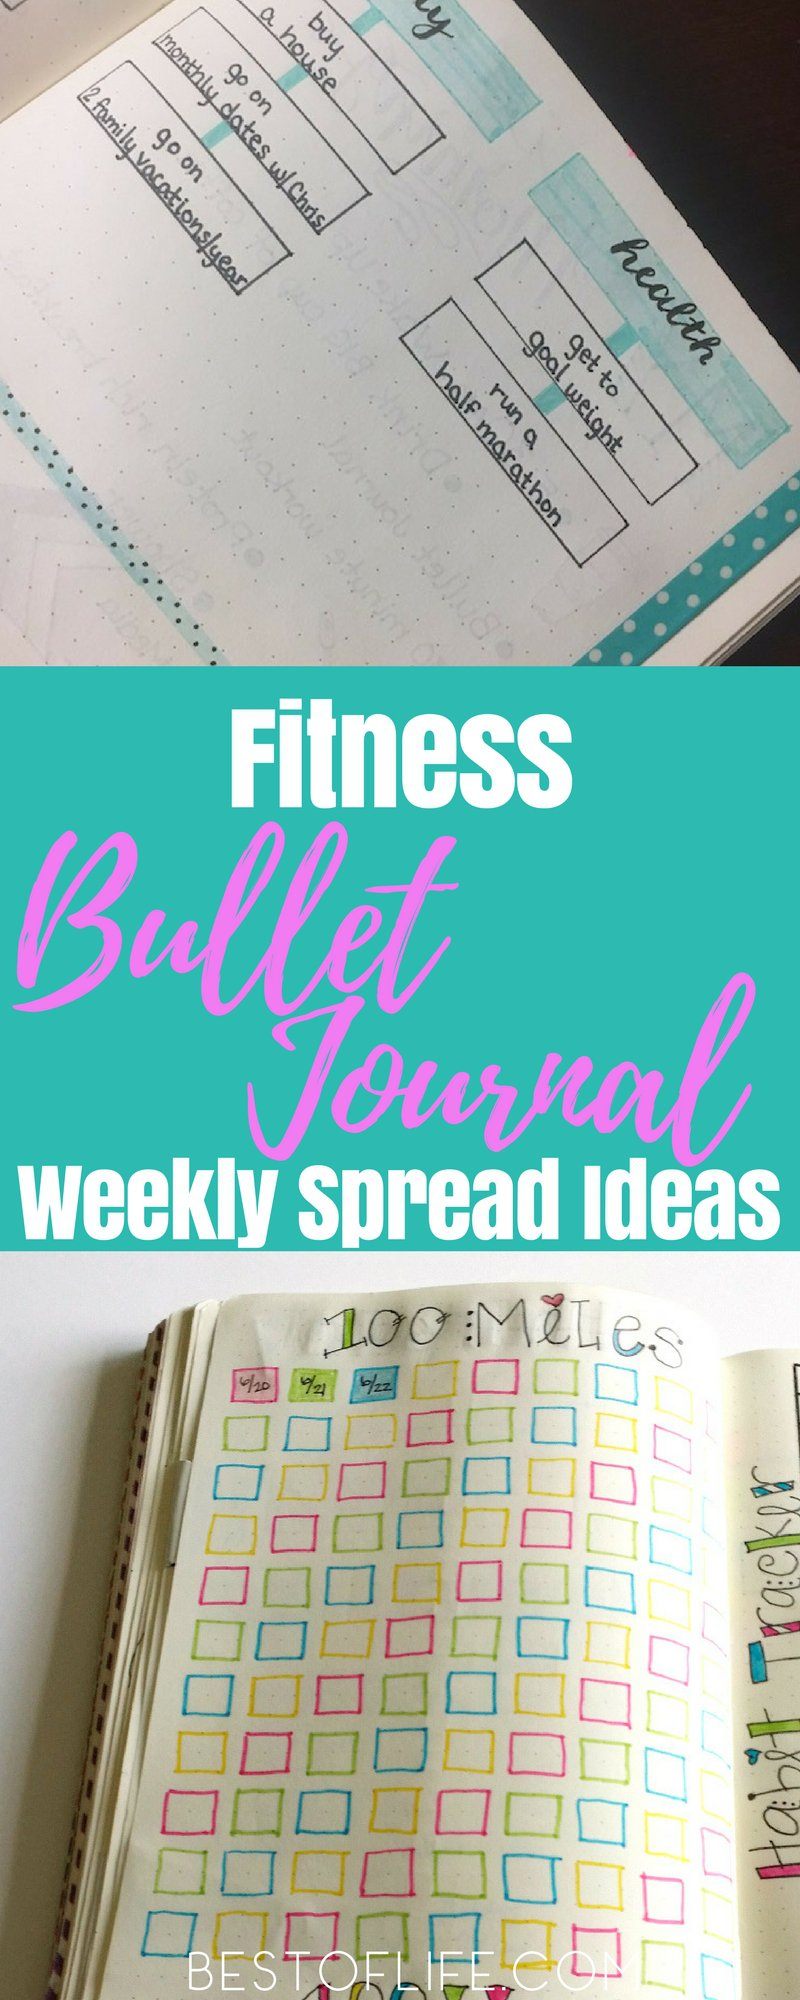 There are several ways one can use a fitness bullet journal to track fitness habits and reach health goals. One way is through a strategically-designed weekly spread. Fitness Tips | Best Fitness Tips | Easy Fitness Tips | Fitness Bullet Journal Tips | Easy Fitness Bullet Journal Tips | Best Fitness Bullet Journal Tips | Fitness BuJo Tips | Fitness BuJo Ideas